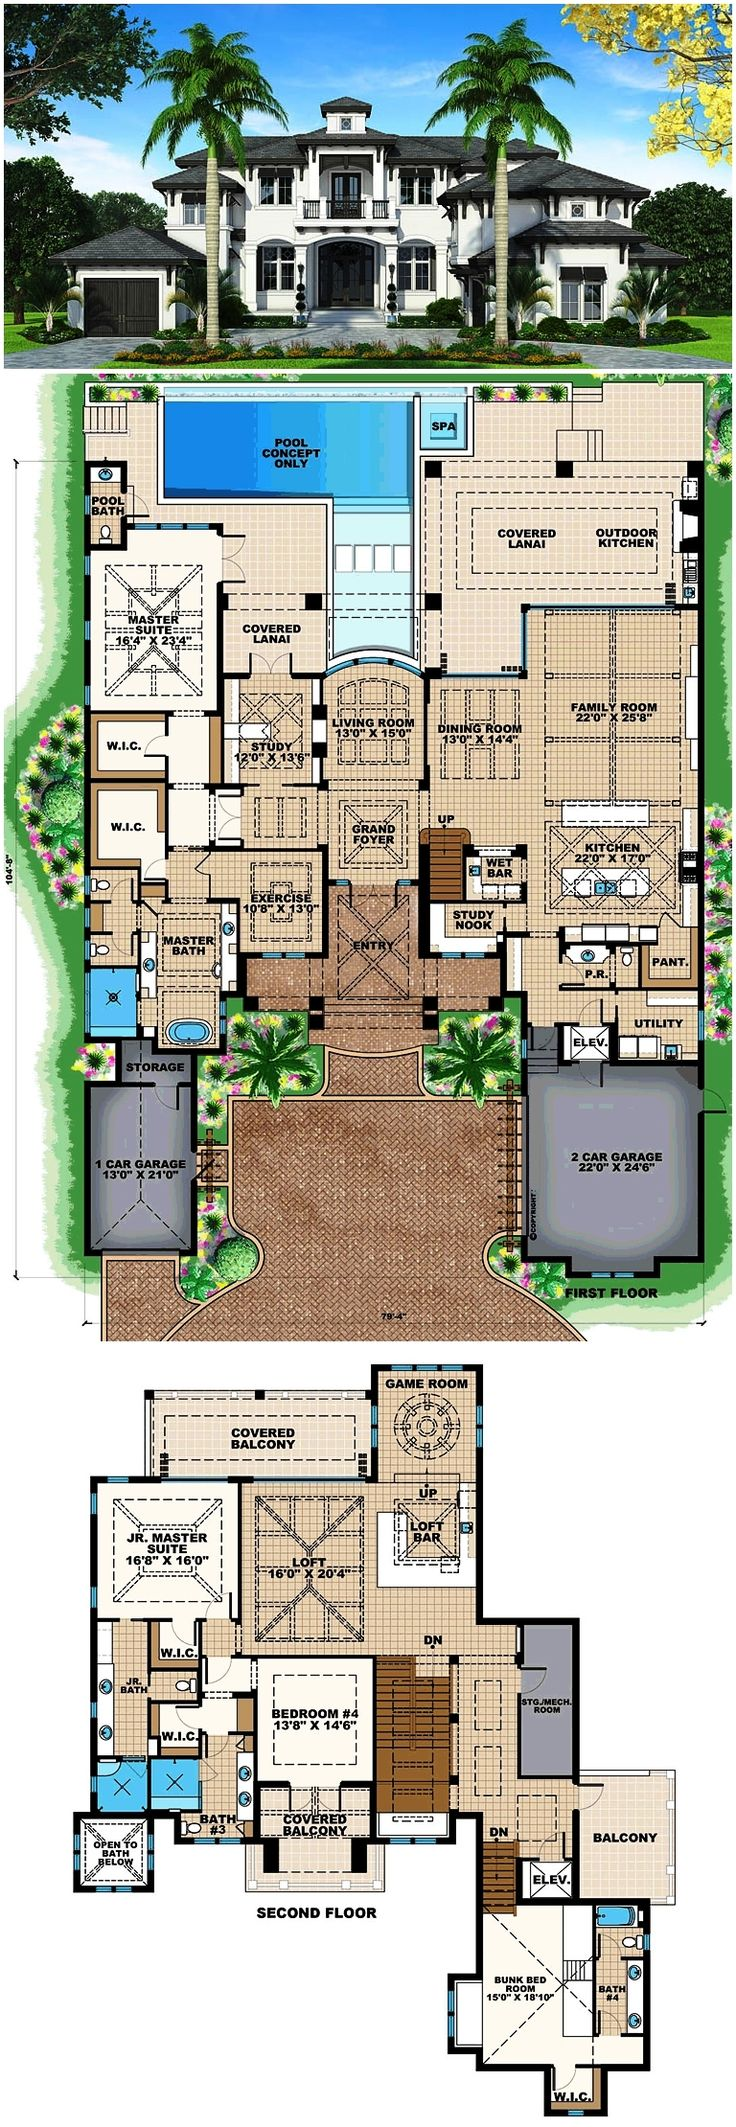 17 Best ideas about Dream House Plans on Pinterest House floor